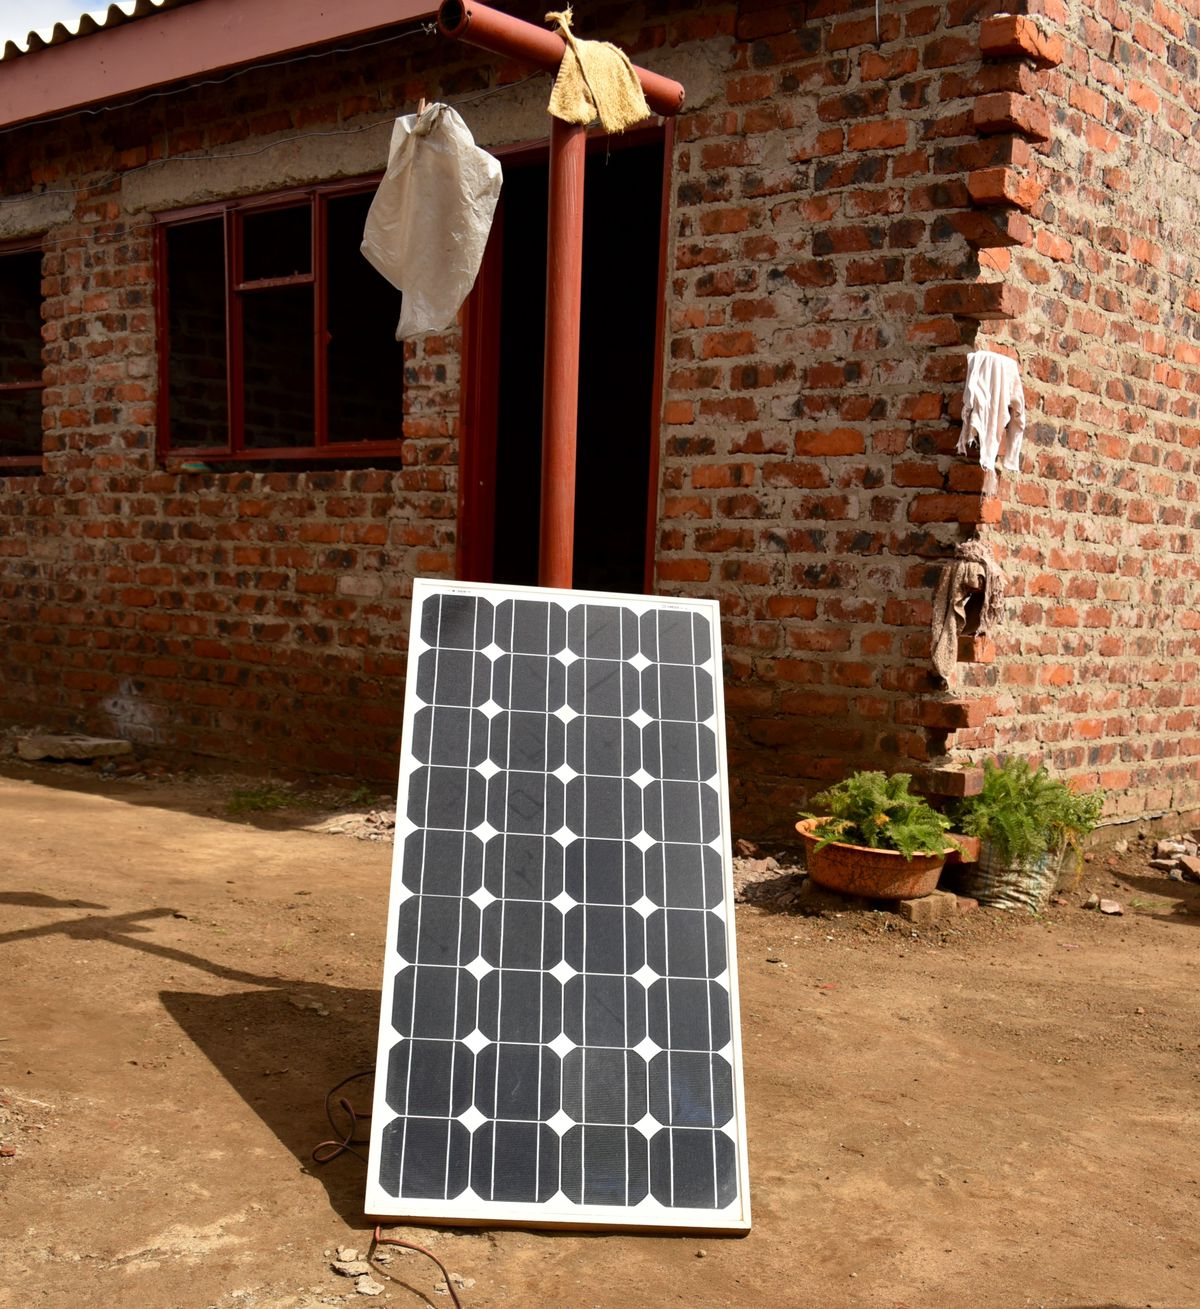 """A full-sized """"roof"""" solar panel leaning up against a clothesline. Often roof-mounting panels is structurally challenging, so it is not uncommon to see these larger panels placed nearby on the ground."""